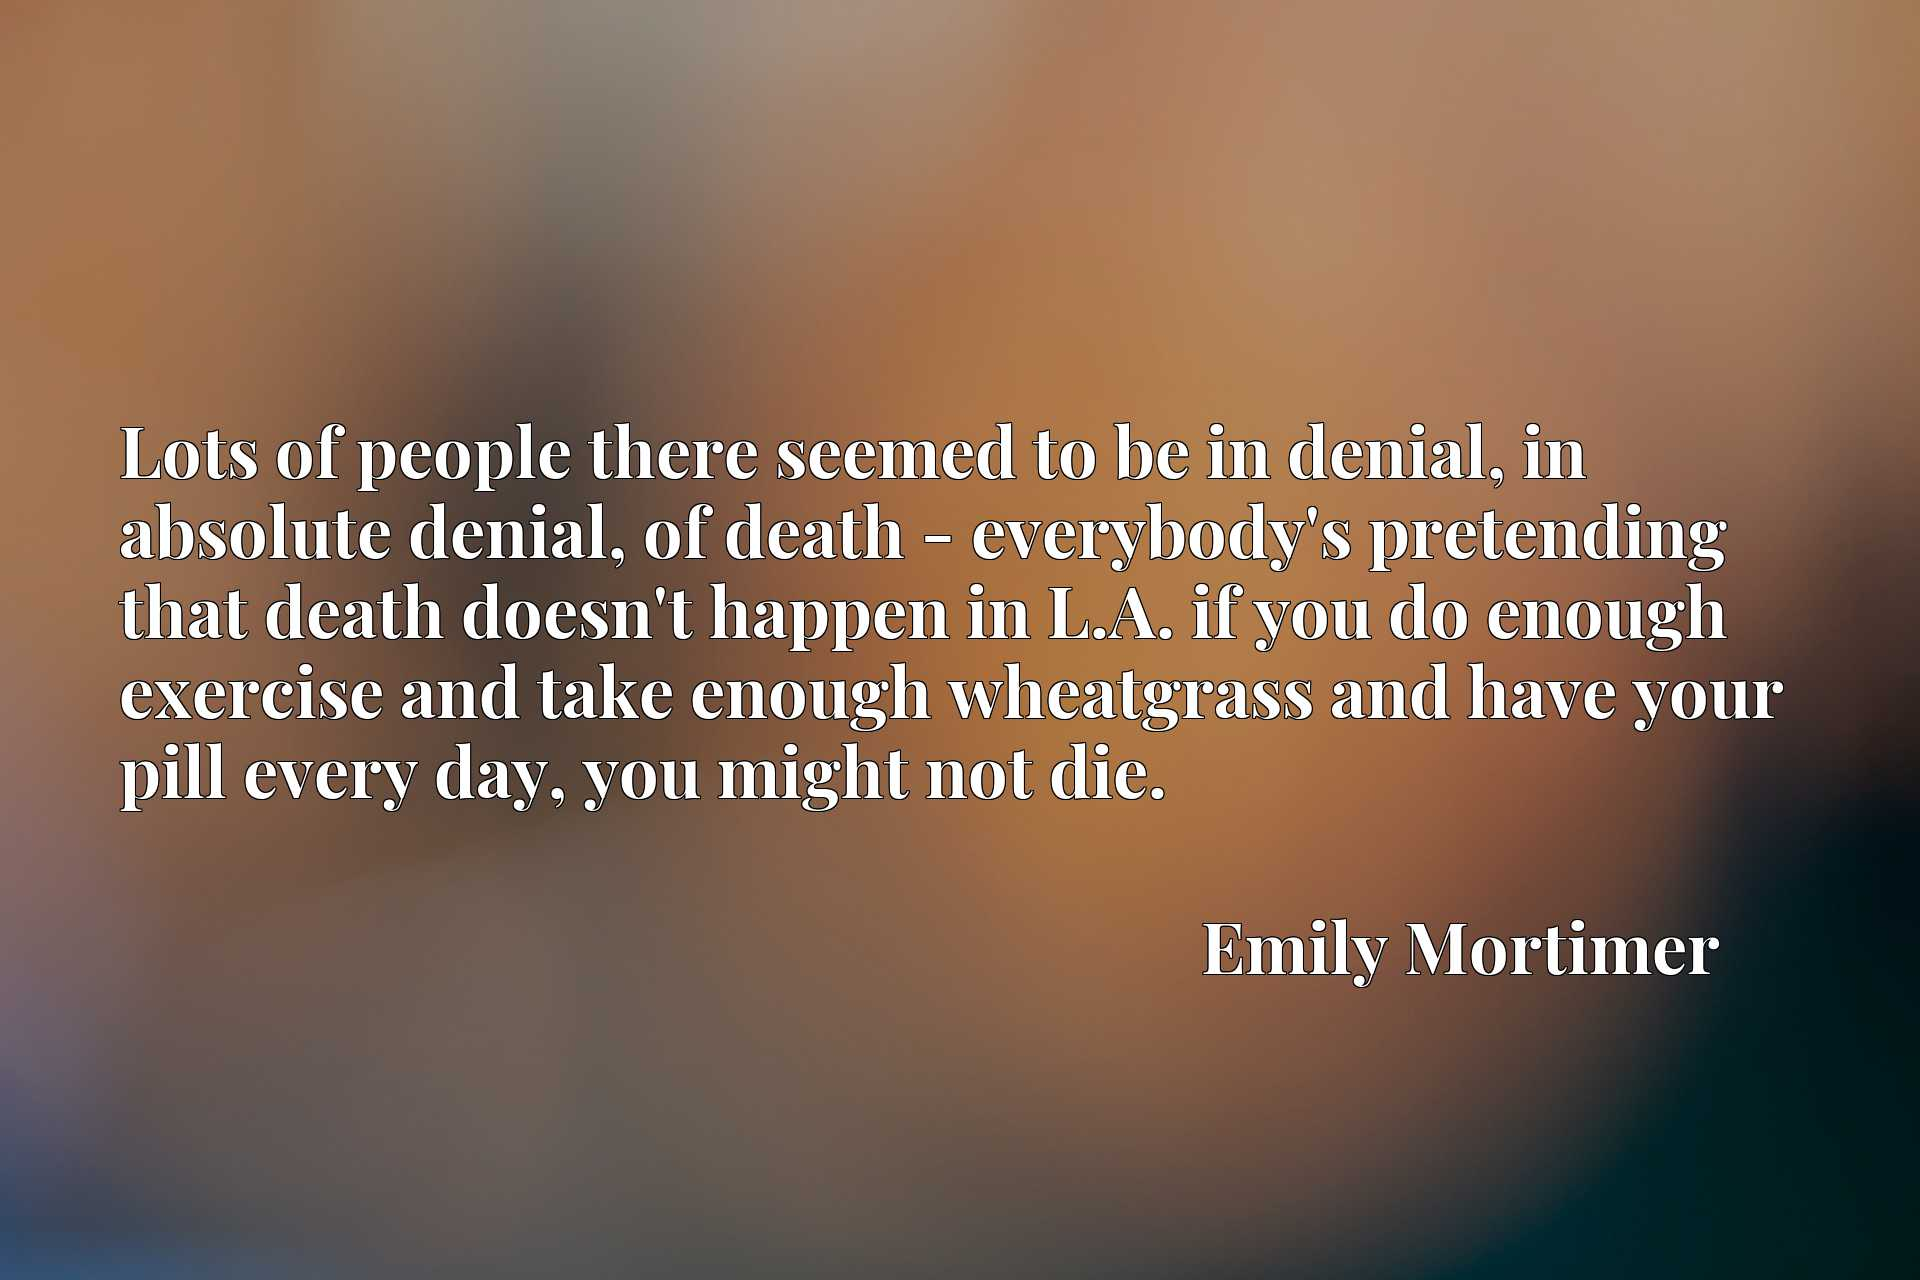 Lots of people there seemed to be in denial, in absolute denial, of death - everybody's pretending that death doesn't happen in L.A. if you do enough exercise and take enough wheatgrass and have your pill every day, you might not die.